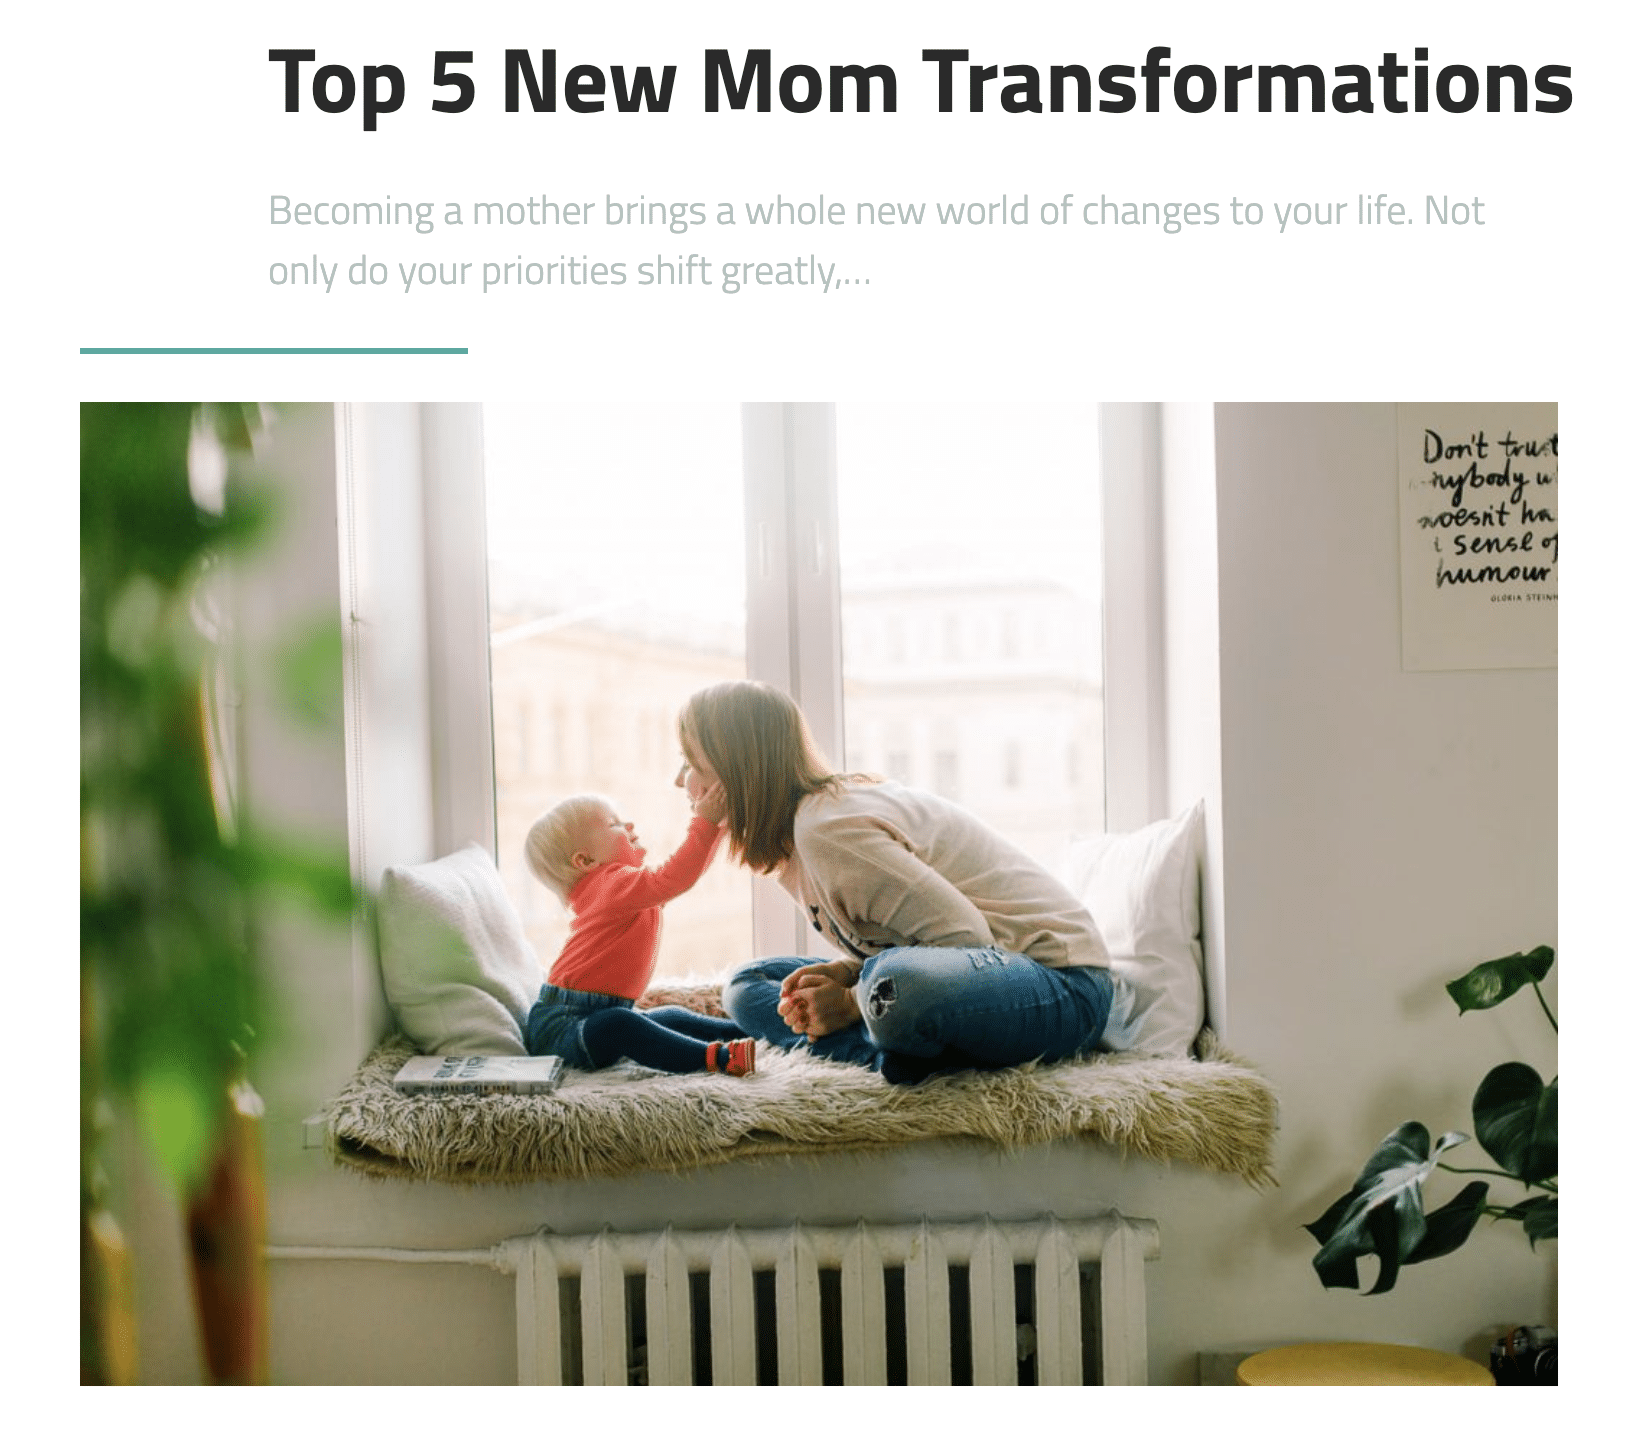 Top 5 New Mom Transformations